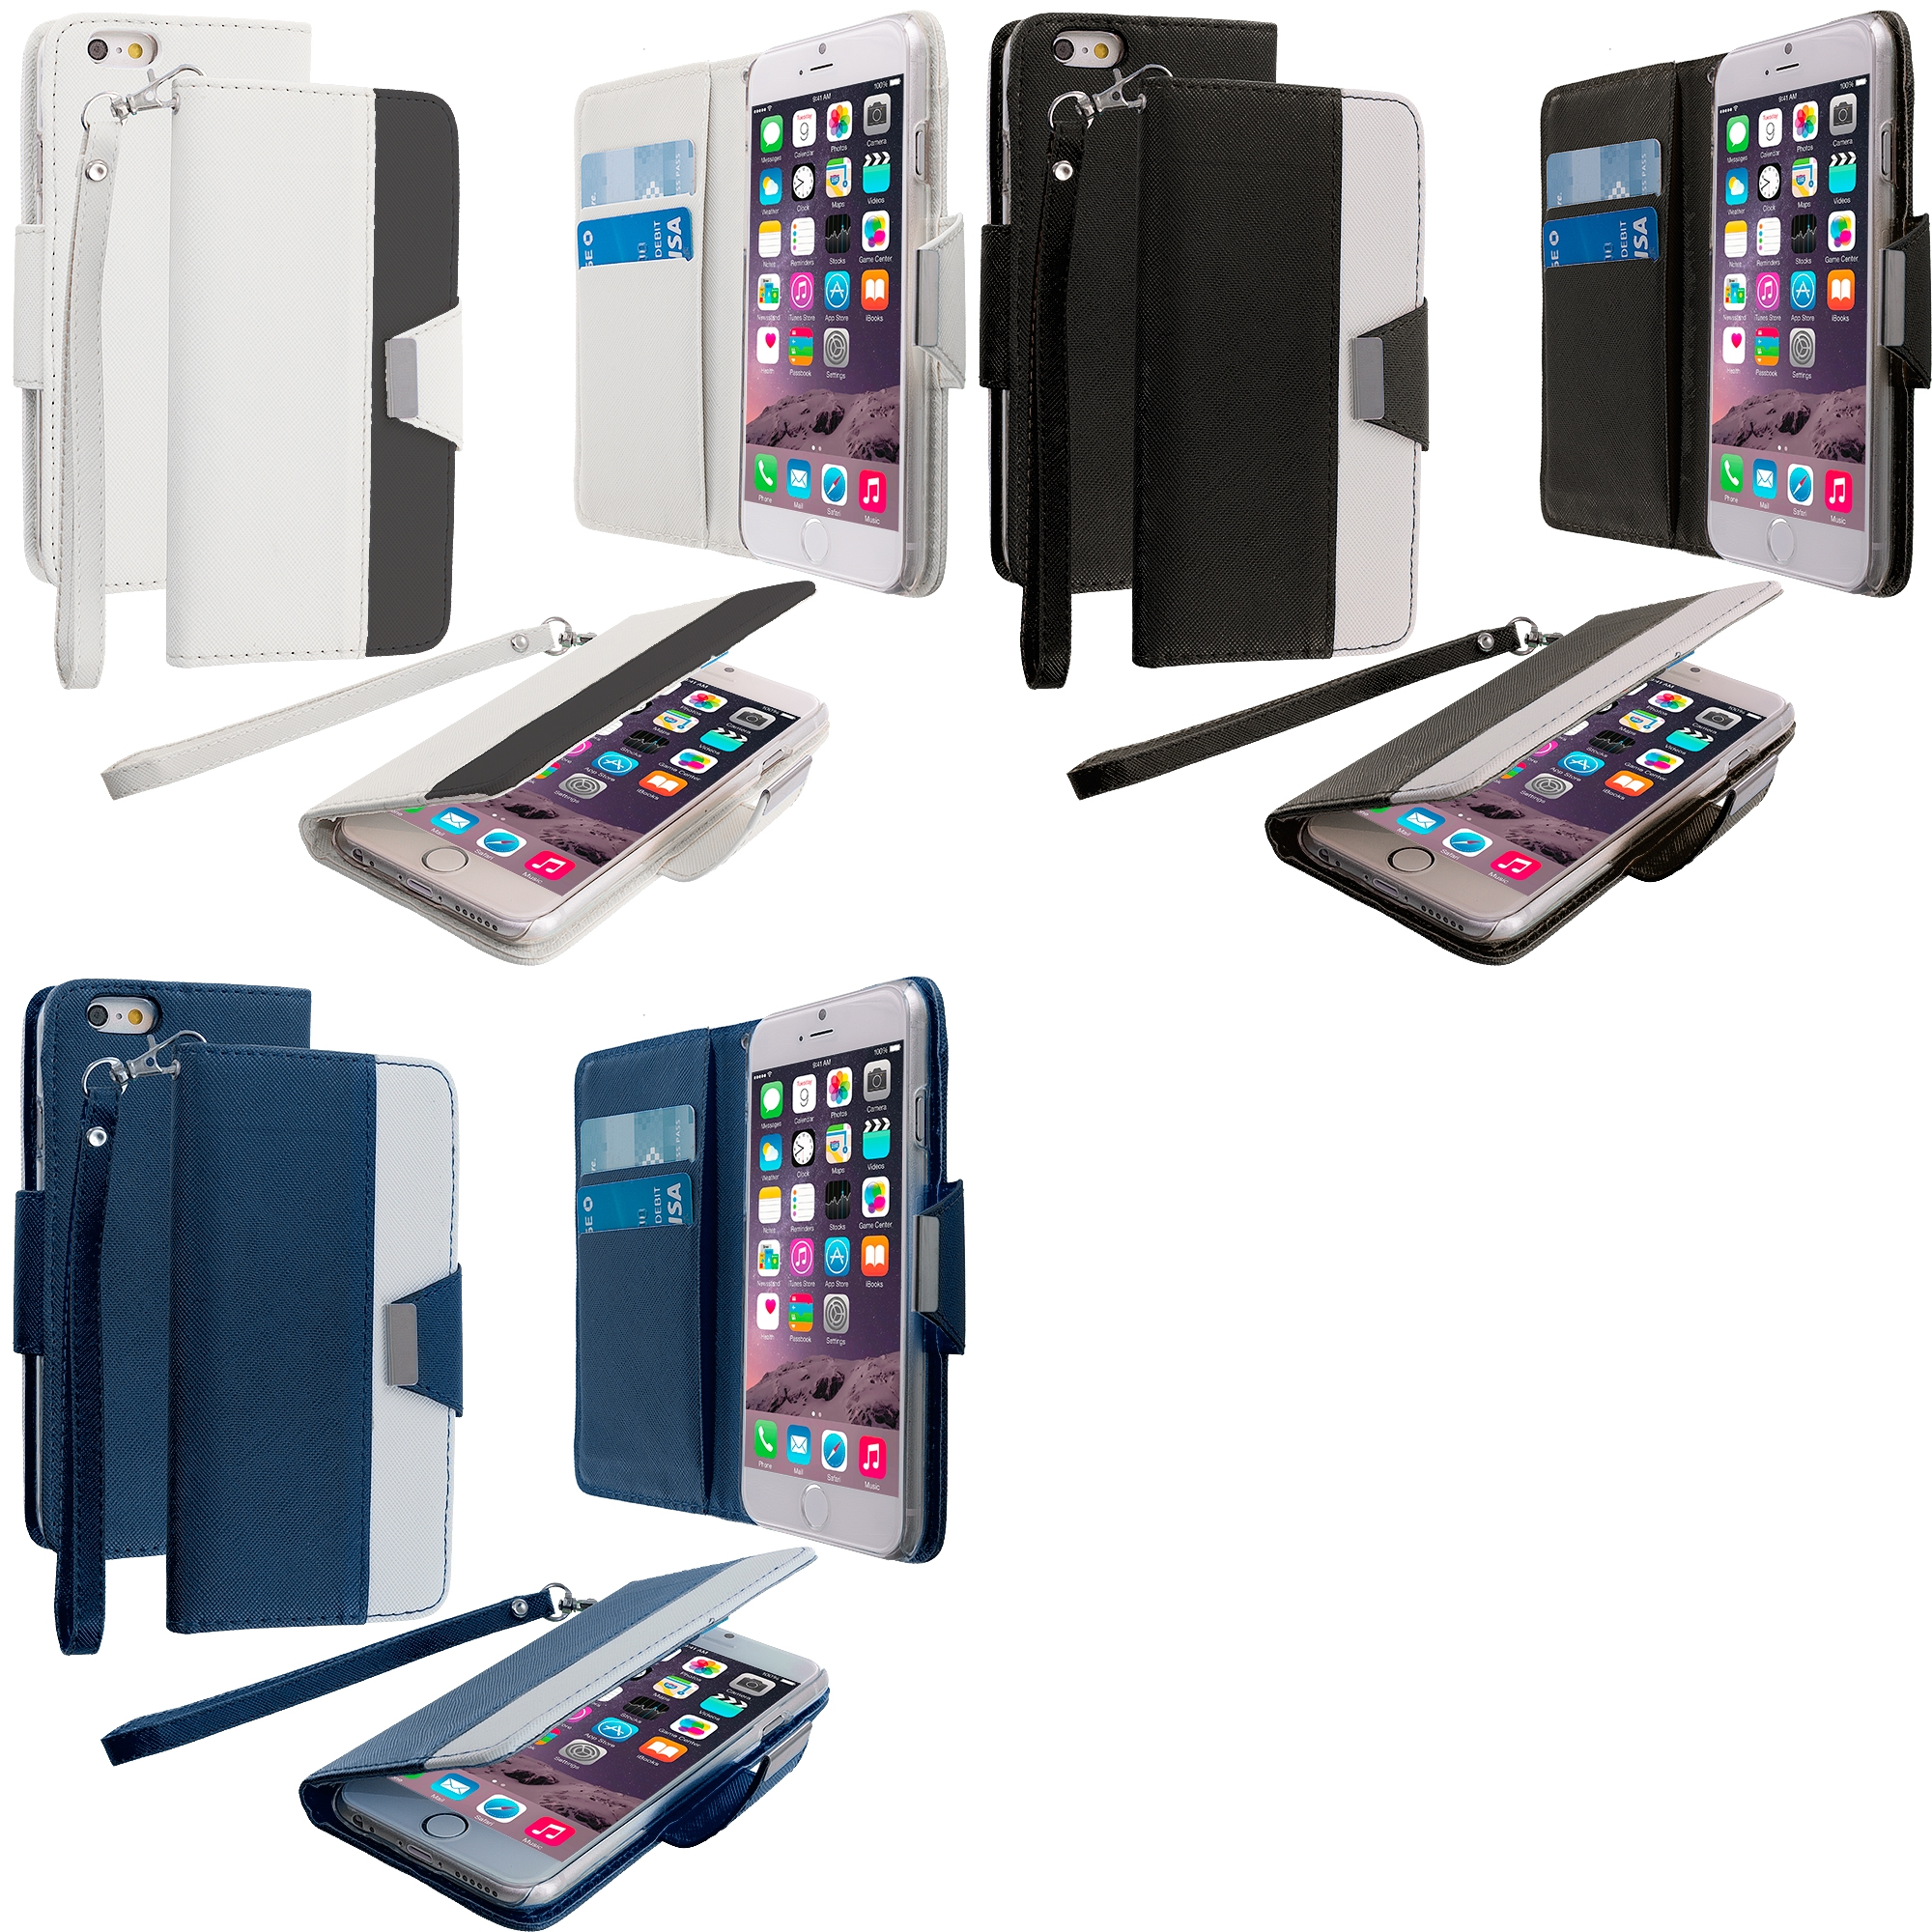 Apple iPhone 6 Plus 6S Plus (5.5) 3 in 1 Combo Bundle Pack - Wallet Magnetic Metal Flap Case Cover With Card Slots